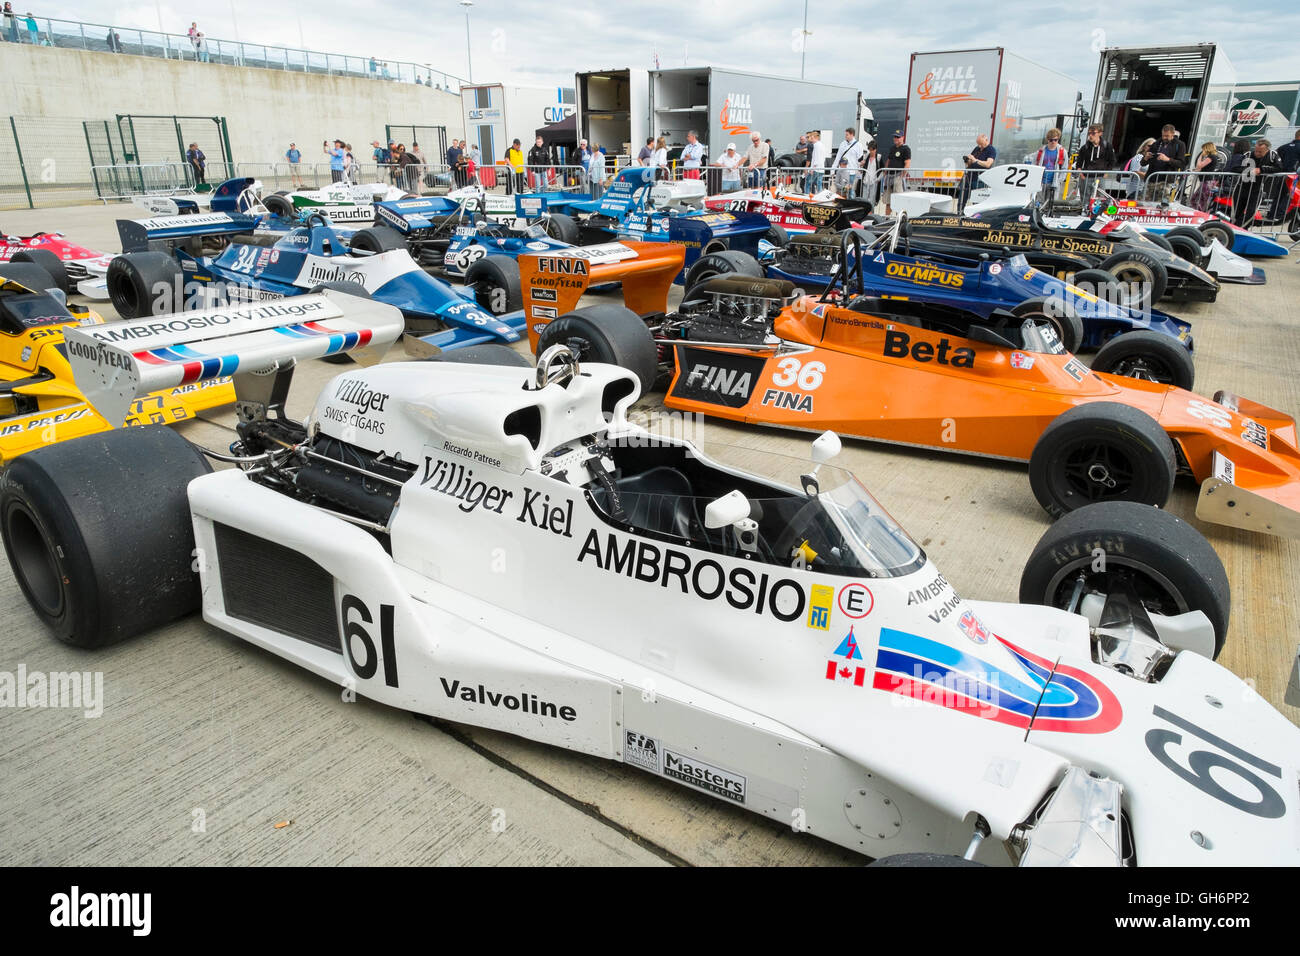 Silverstone F1 Stock Photos & Silverstone F1 Stock Images - Alamy